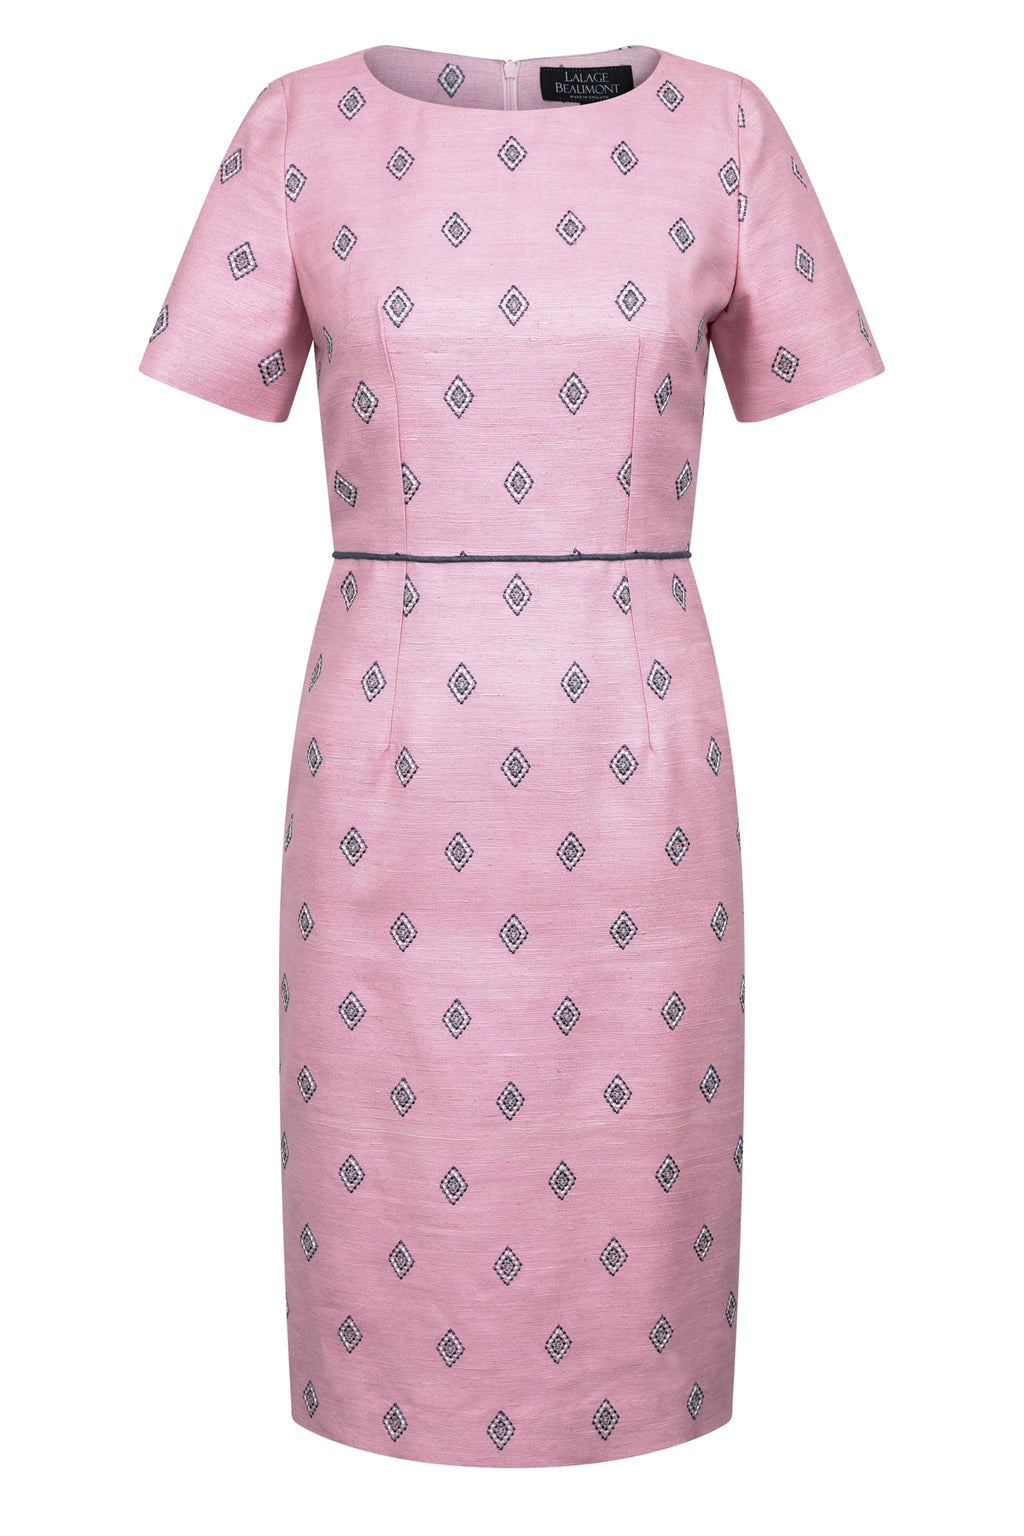 Angie dress by Lalage Beaumont